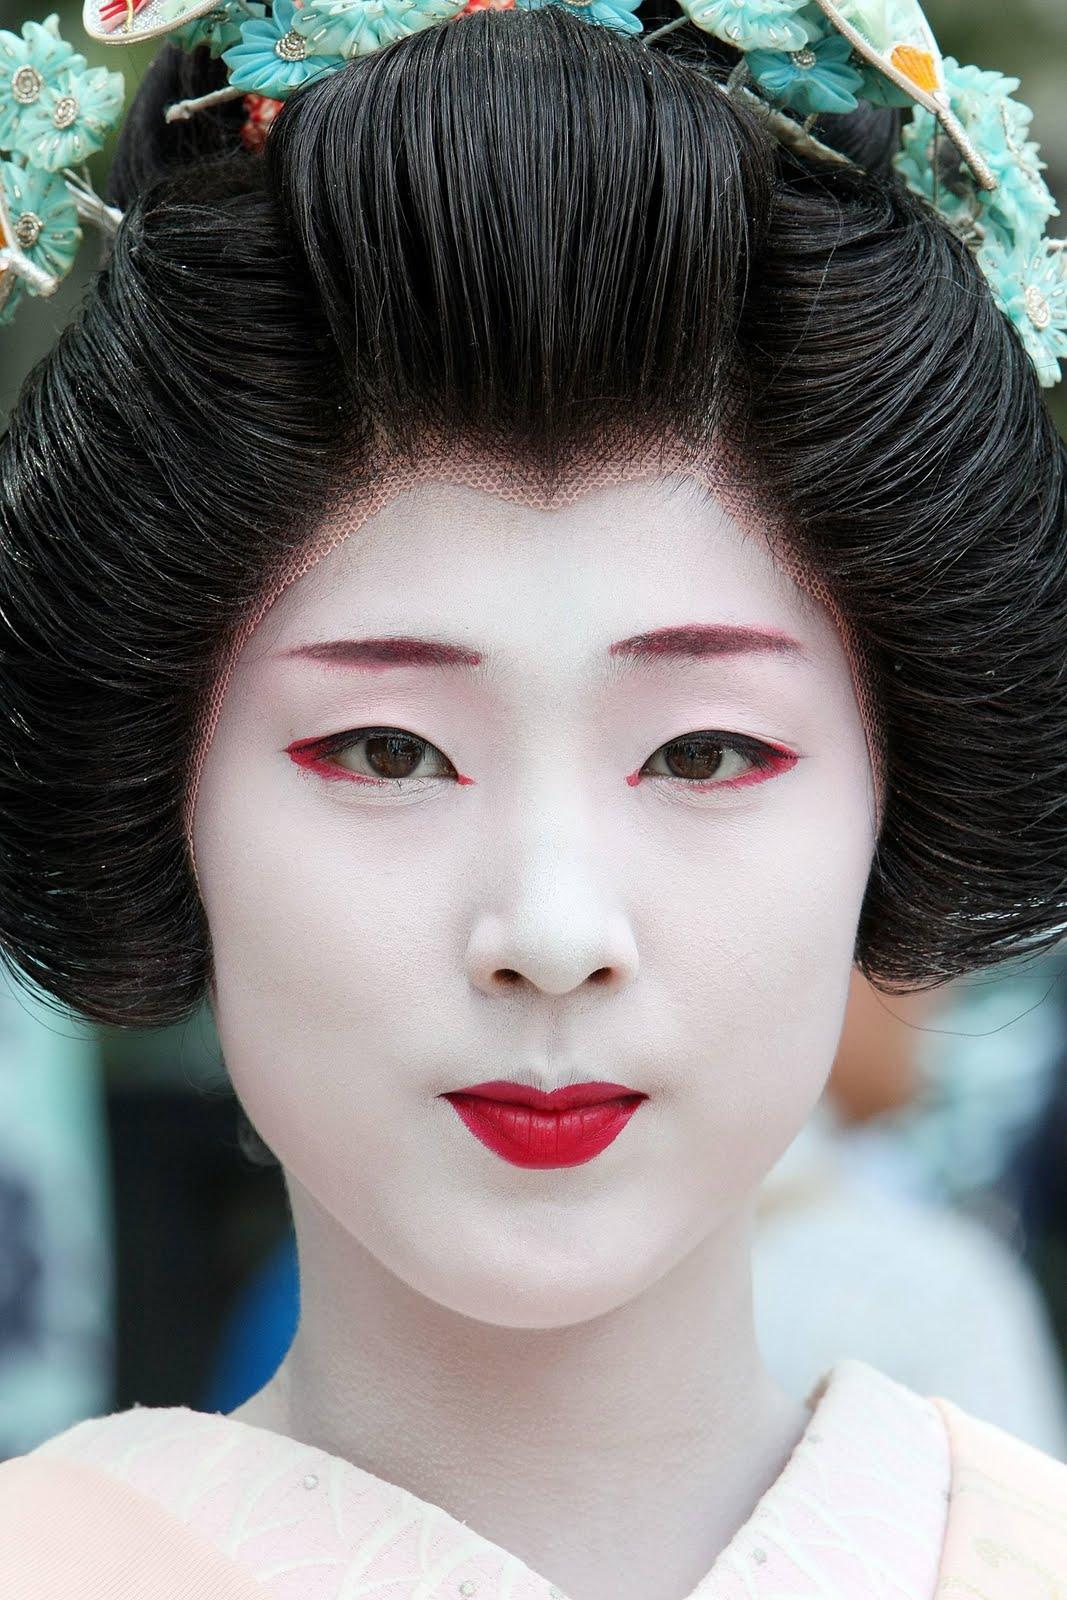 Samantha Lennon Blog of Makeup & Beauty: Geisha Makeup (Halloween Inspiration)